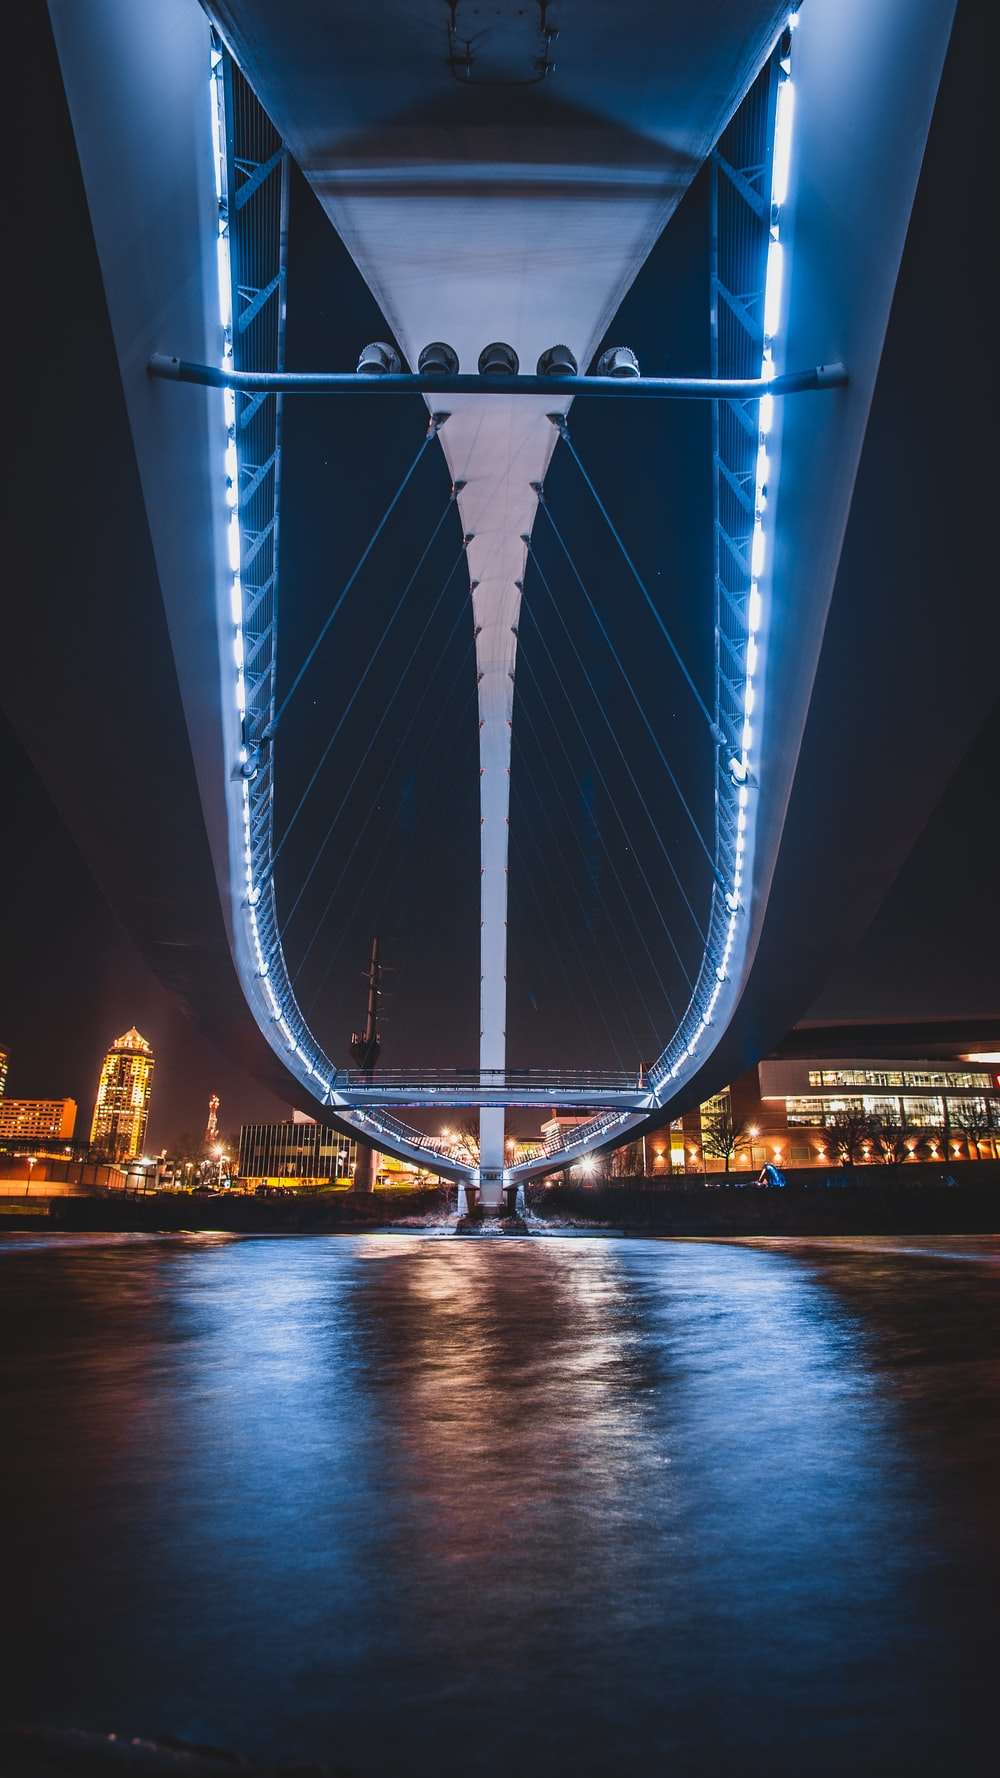 blue bridge over body of water during night time